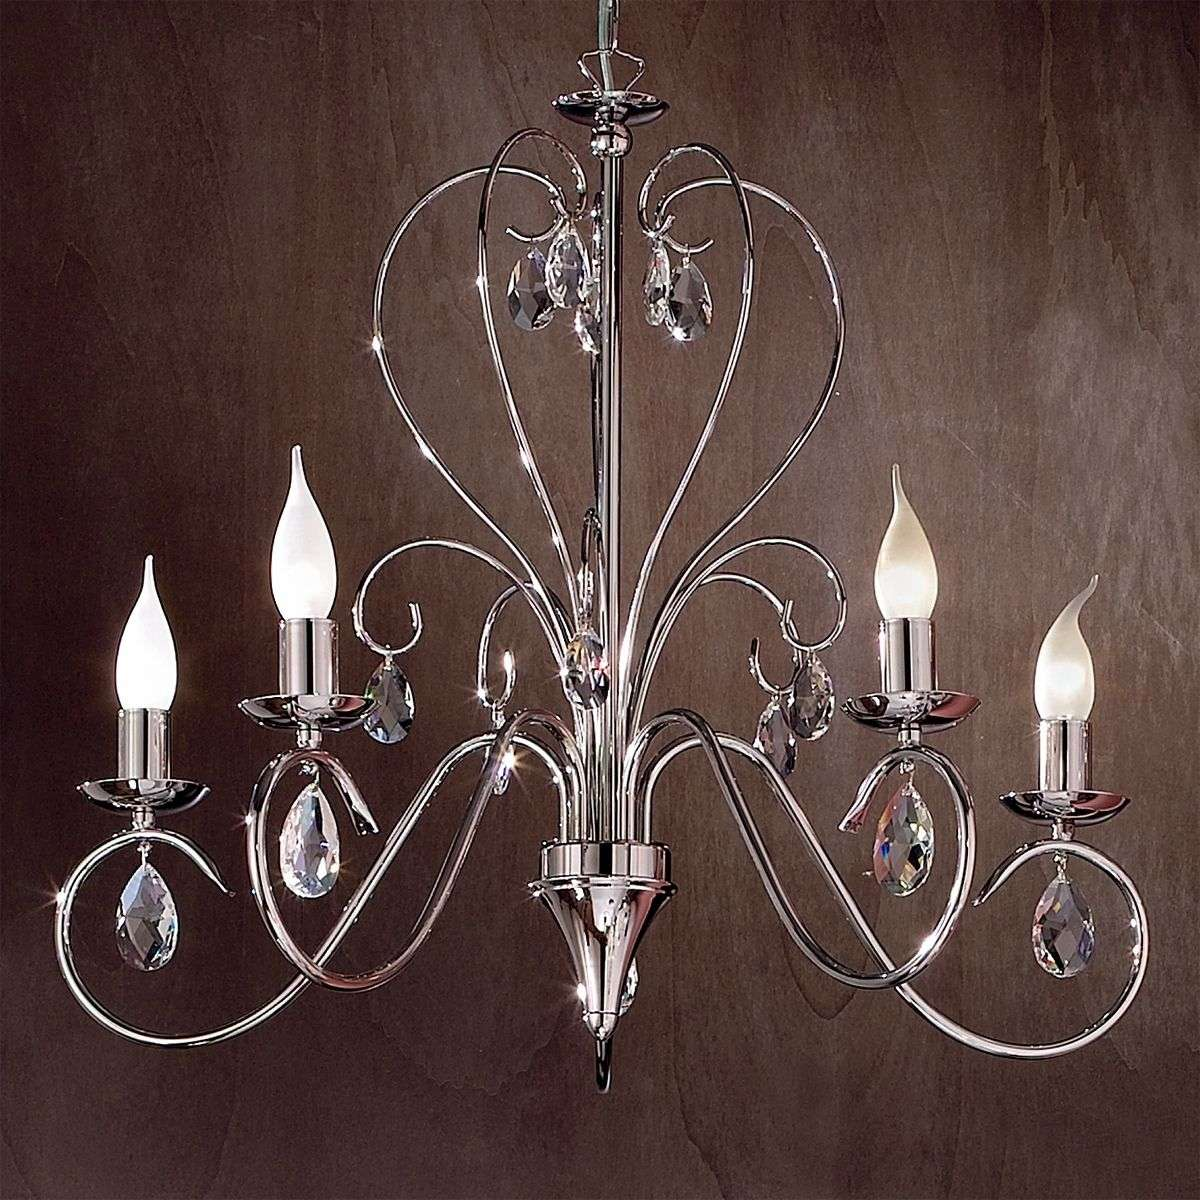 Fioretto chandelier with asfour crystal five bulbs lights fioretto chandelier with asfour crystal five bulbs 7253033 31 aloadofball Image collections